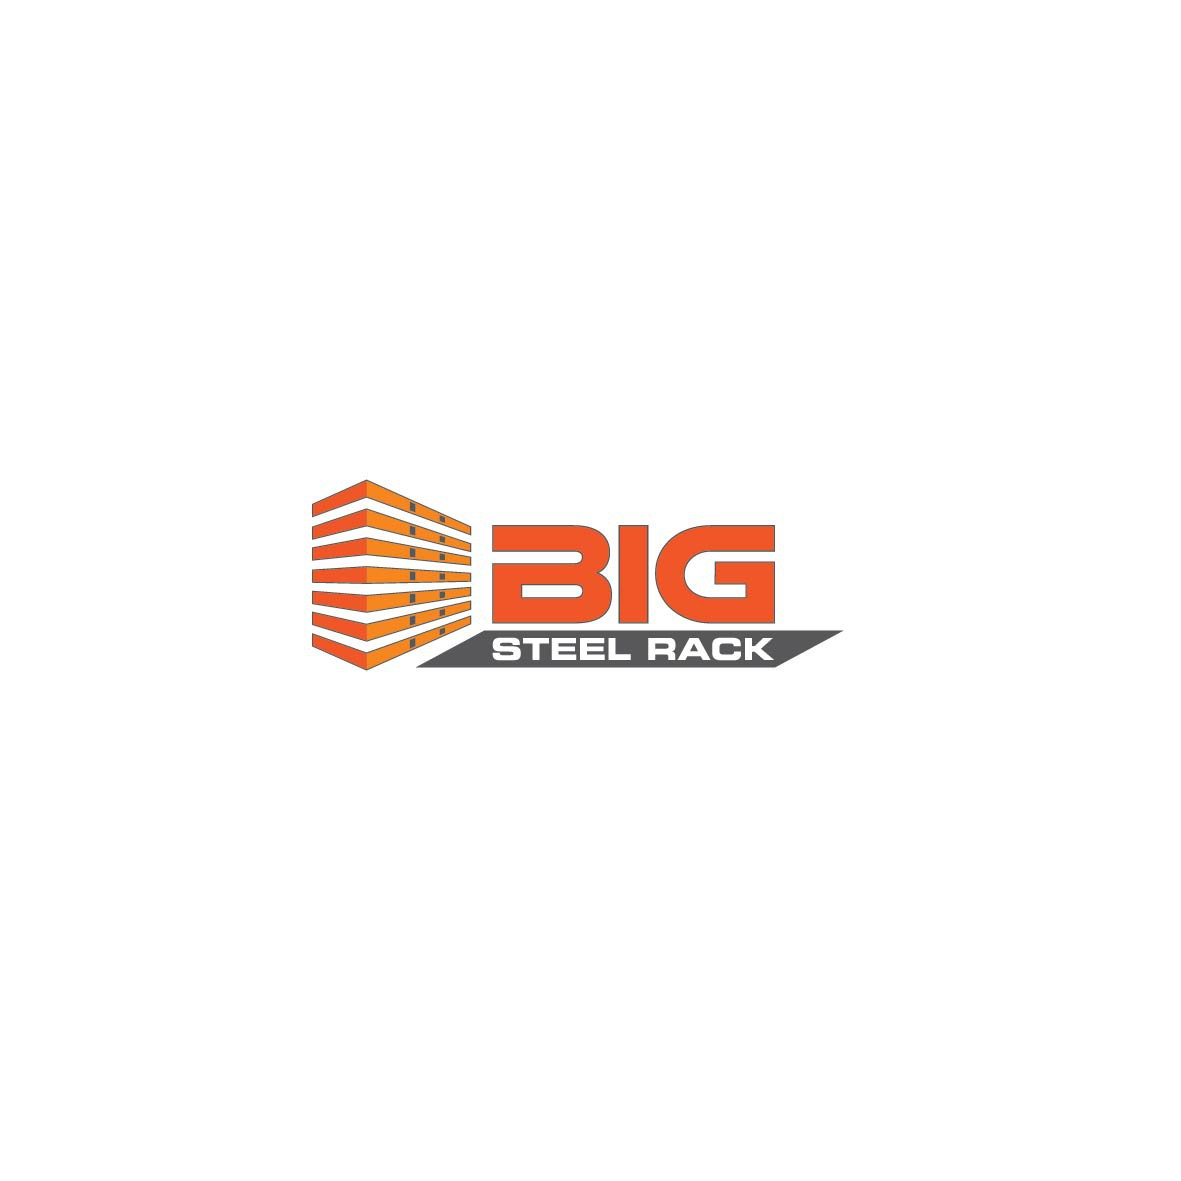 Big Logo Contest for BIG STEEL RACK! Help design a great looking logo for a unique storage solution